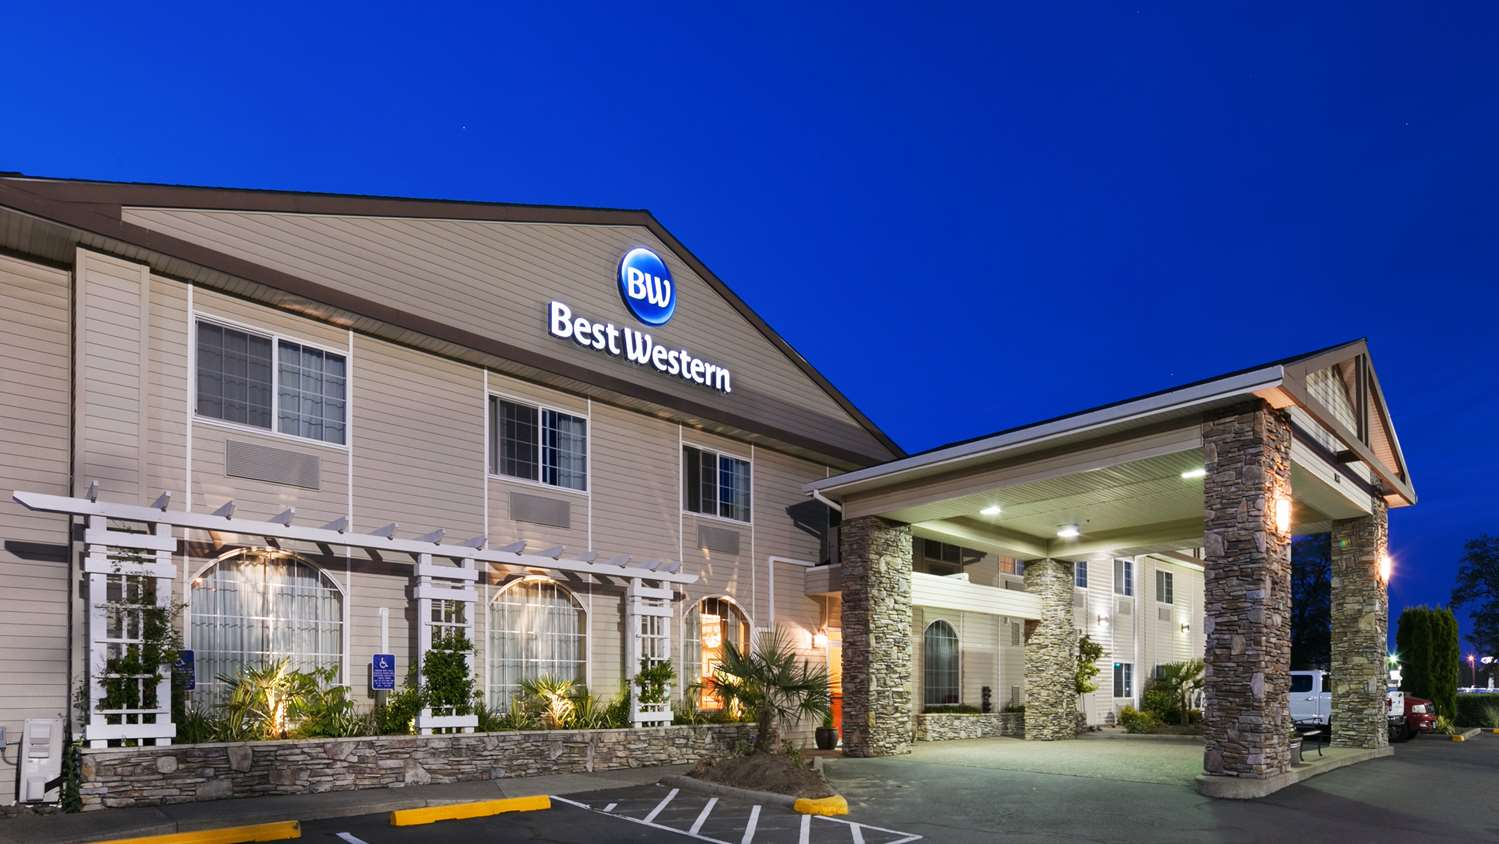 Best Western Hotel In Forest Grove Oregon